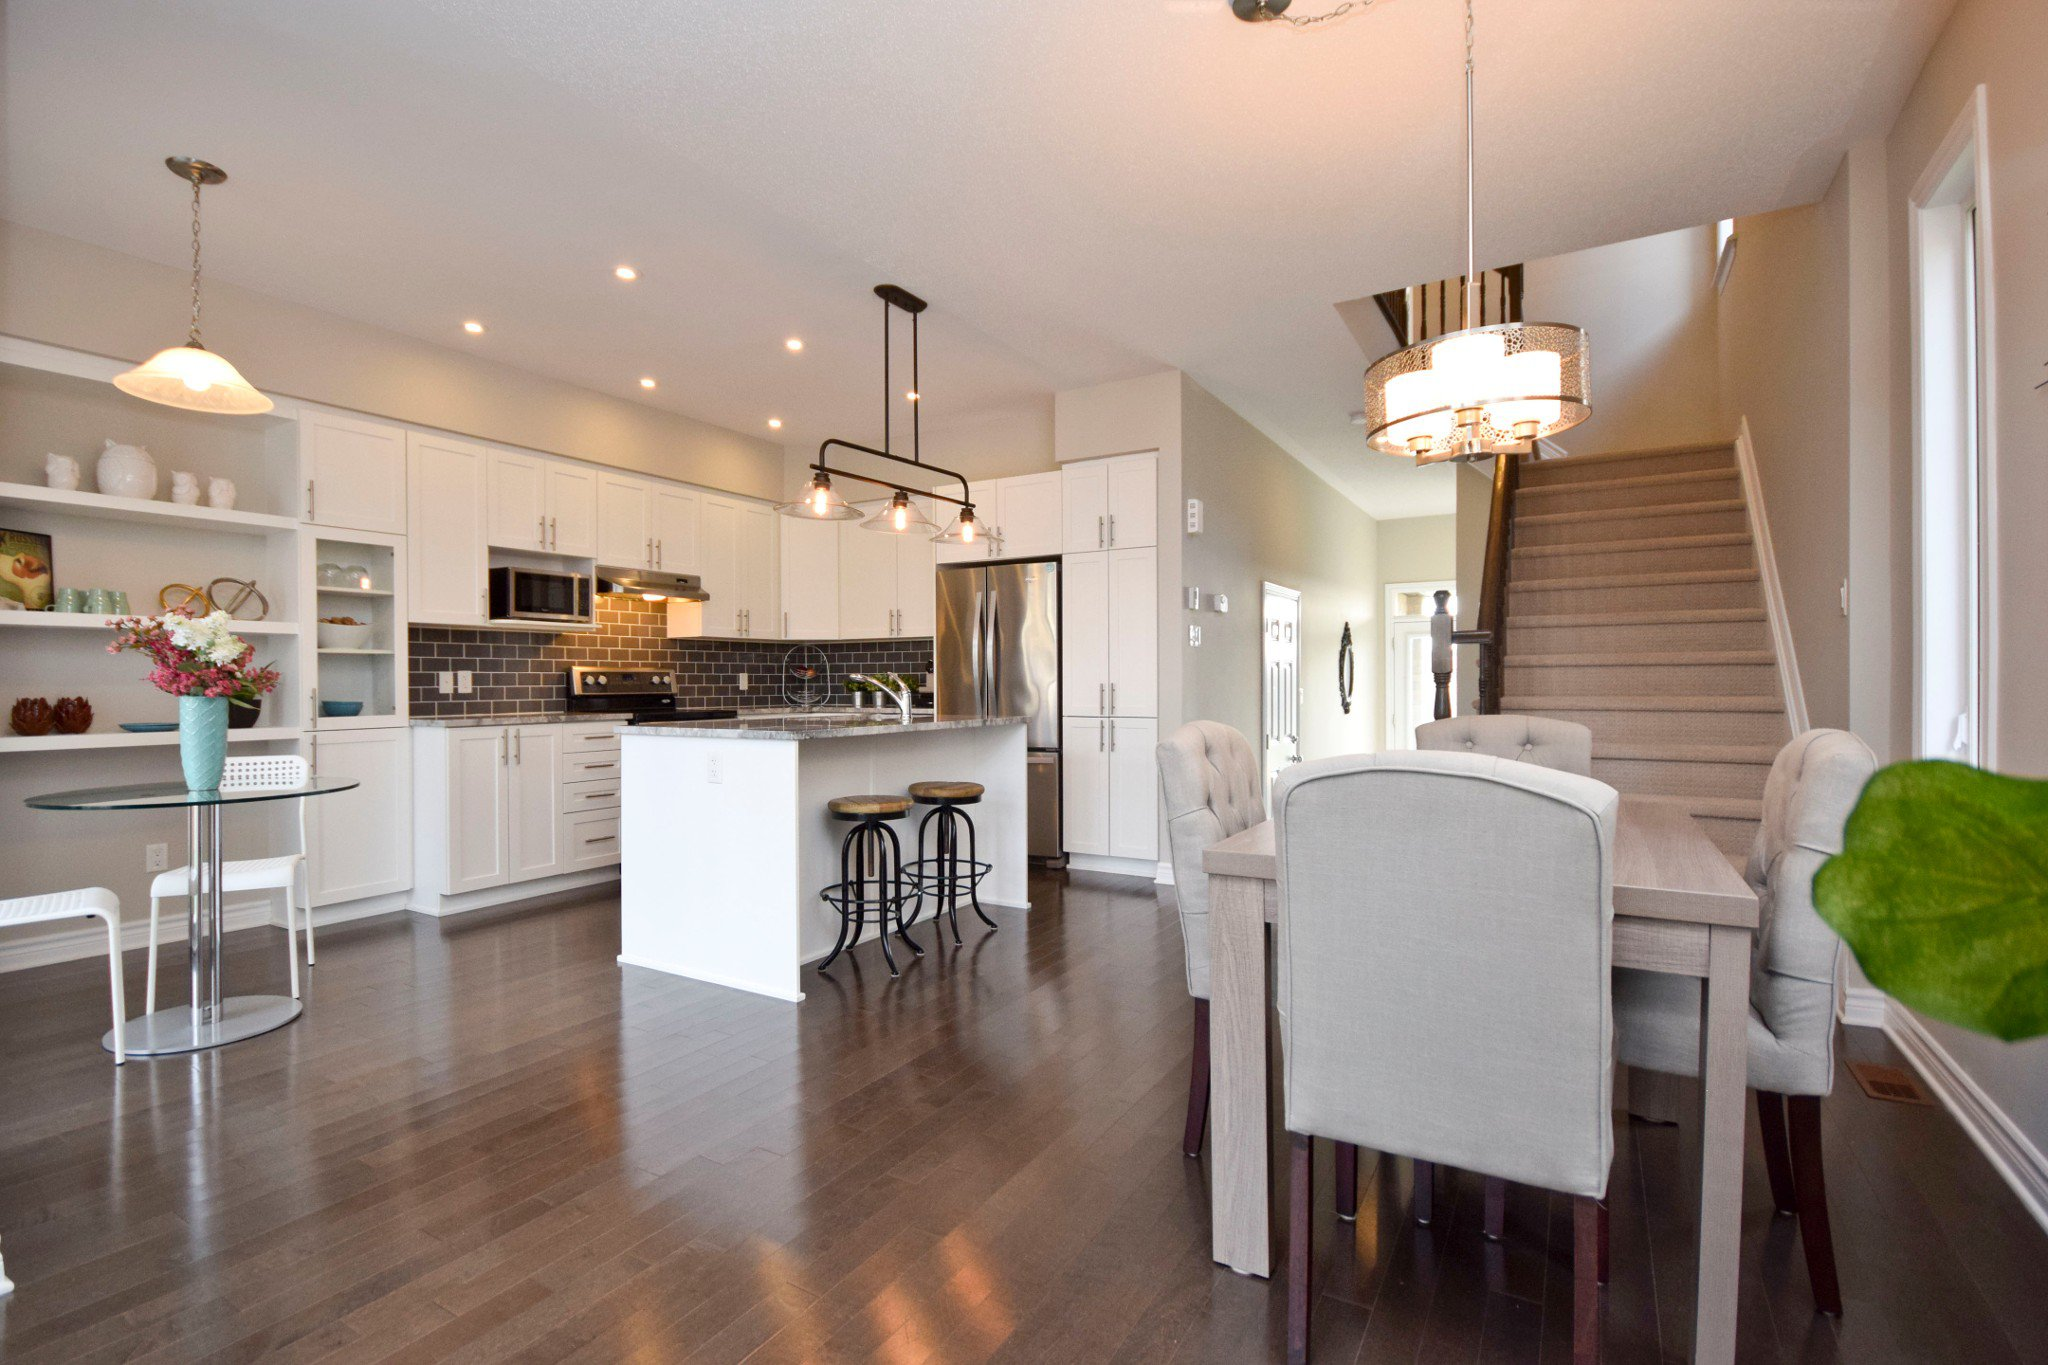 Photo 16: Photos: 131 Popplewell Crescent in Ottawa: Cedargrove / Fraserdale House for sale (Barrhaven)  : MLS®# 1130335